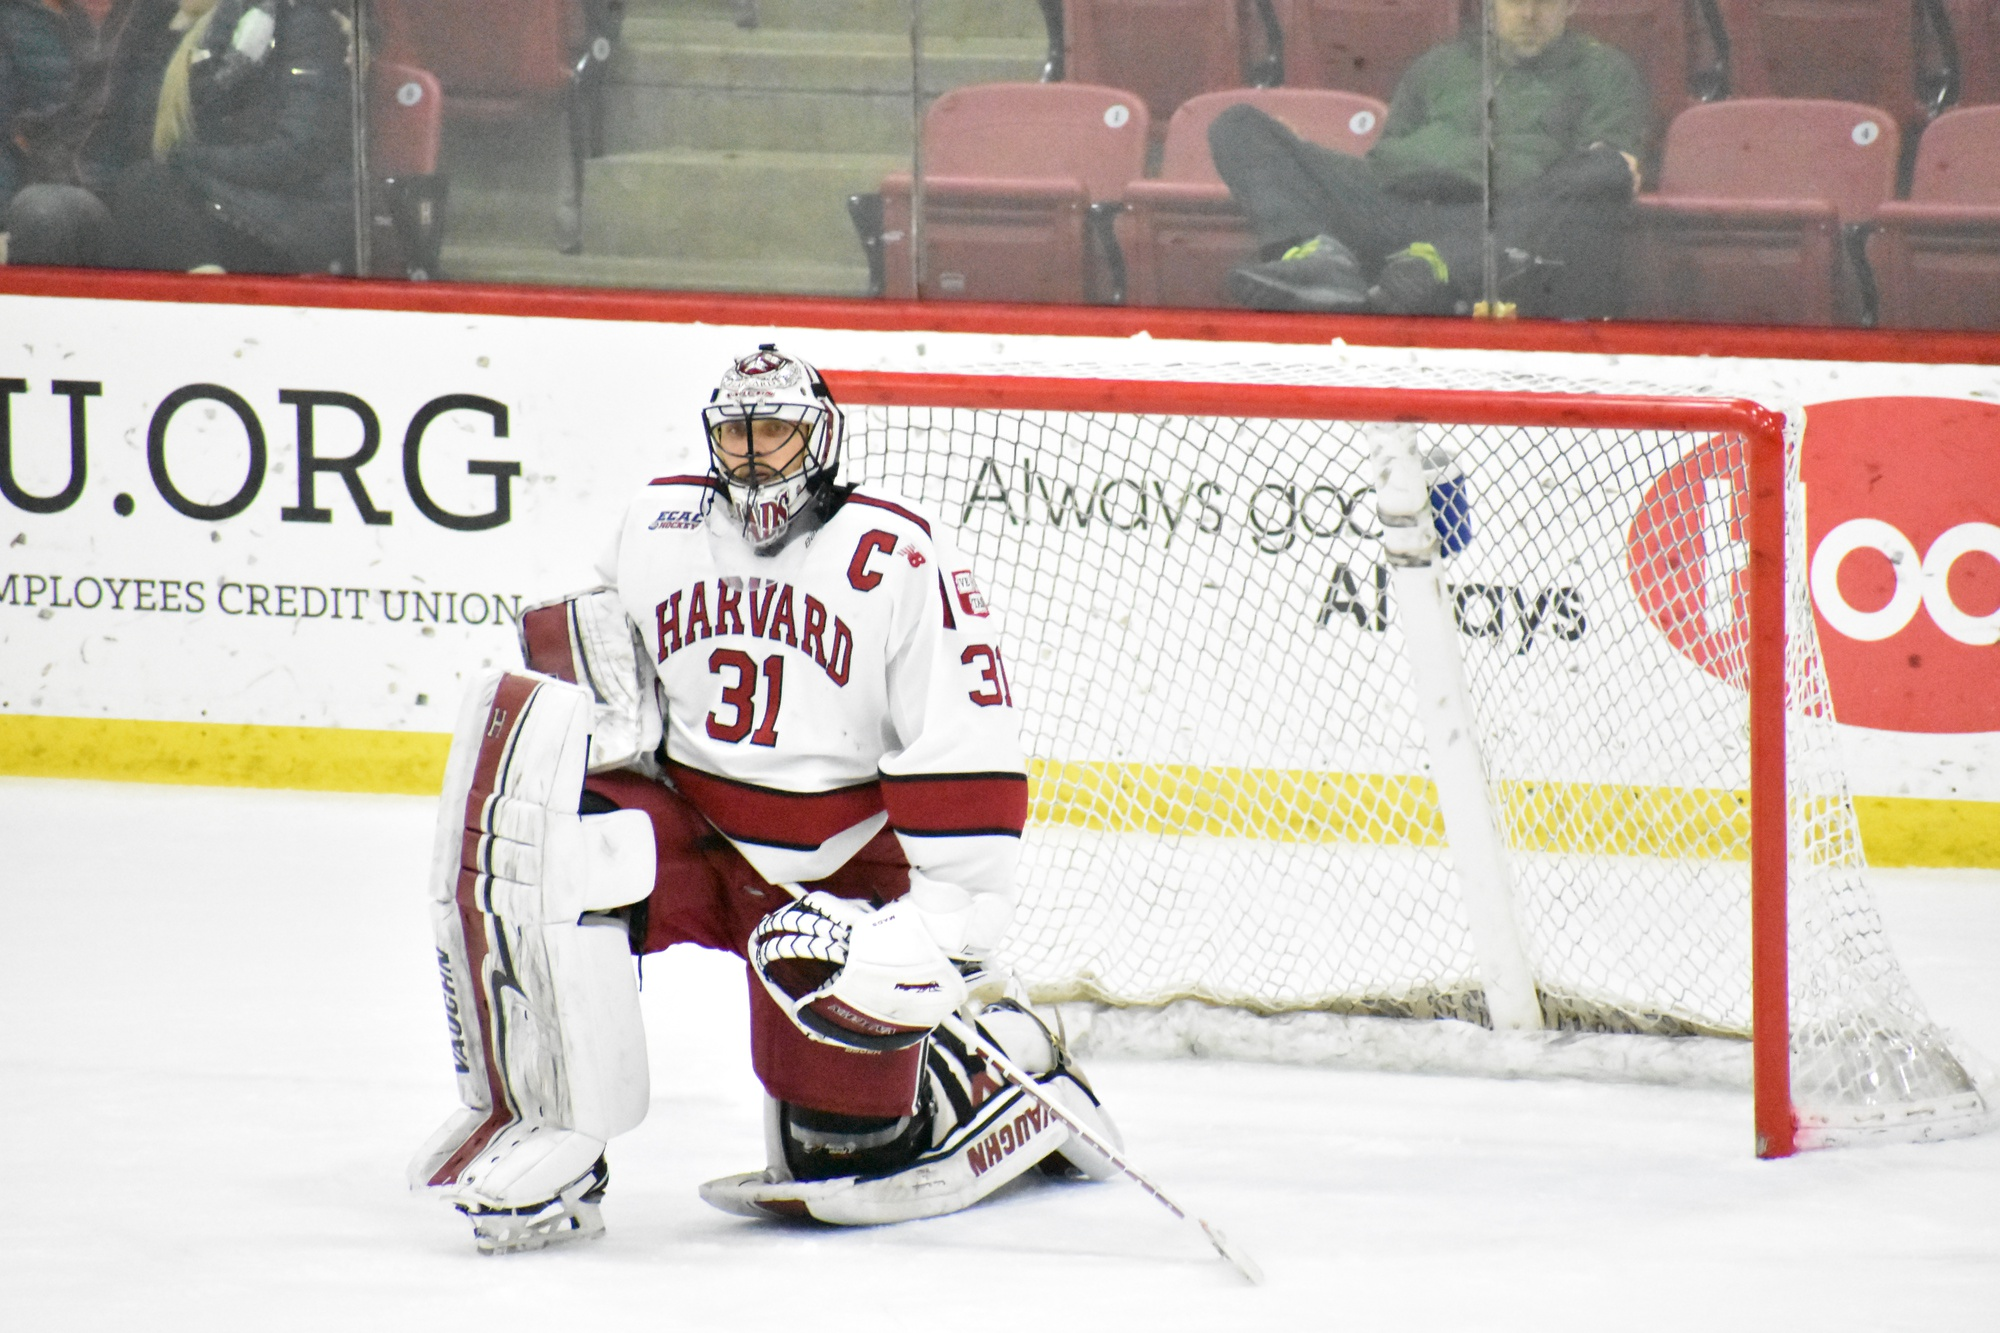 Madsen's shutout versus RPI didn't come easy—the senior net-minder saw 32 shots come his way, but shut the door on all of them.